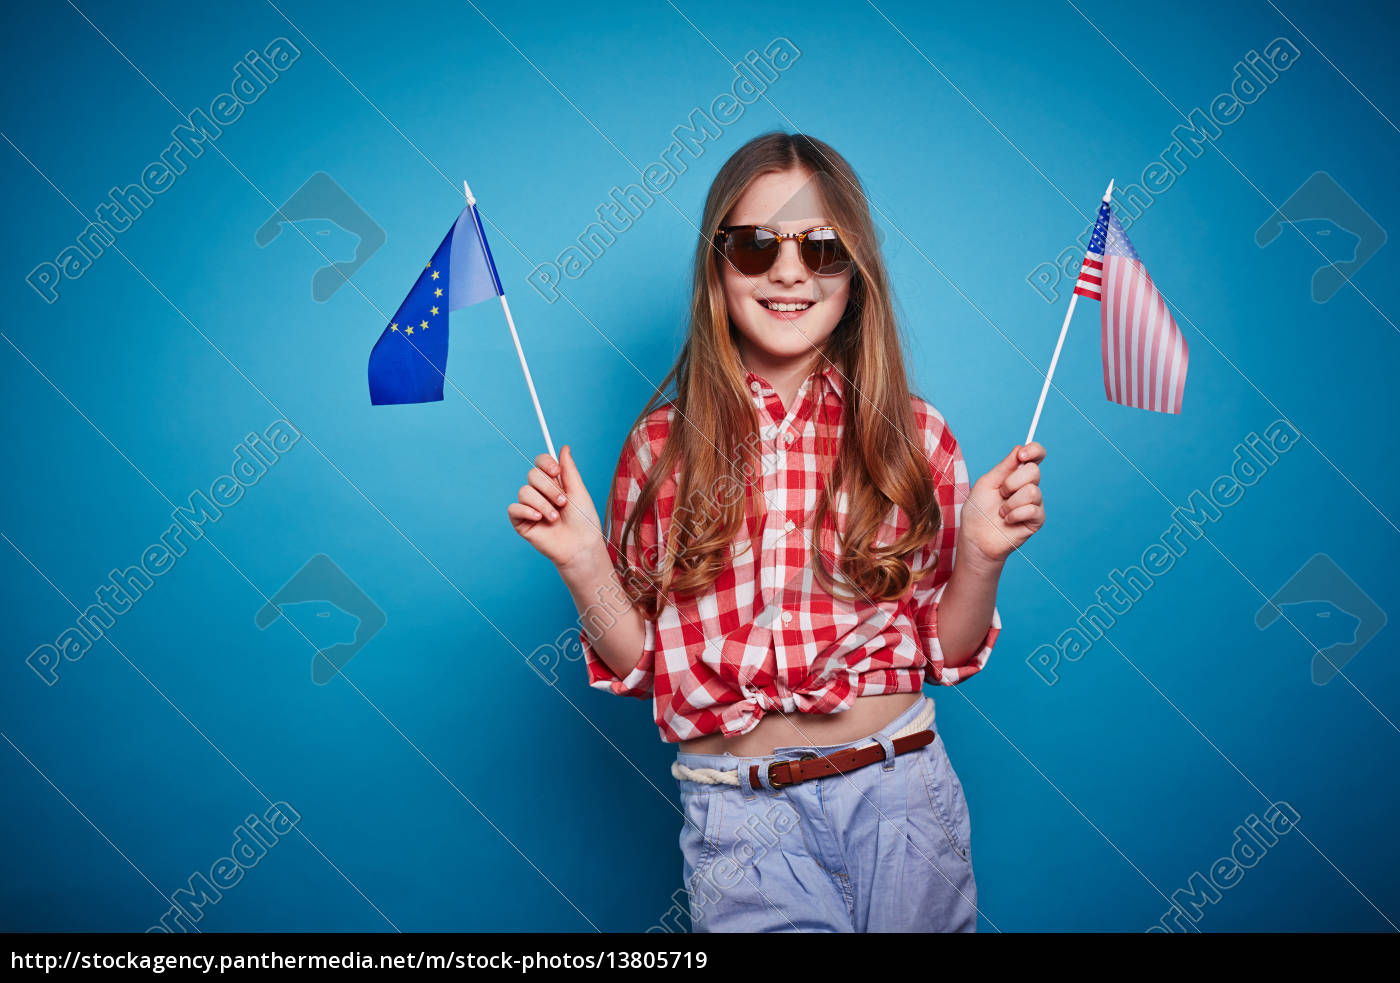 girl, with, european, union, and, american - 13805719